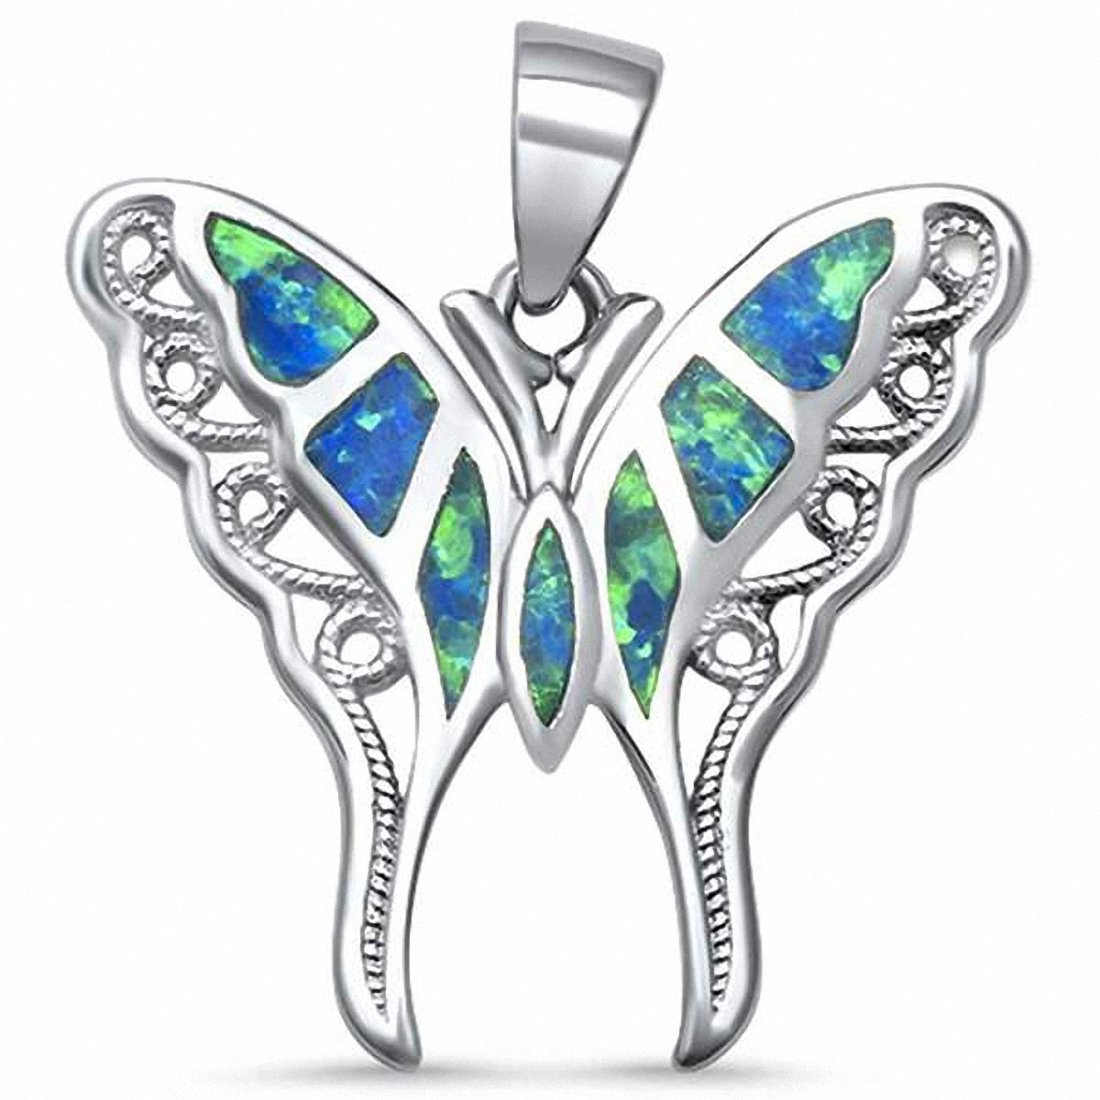 Filigree Swirl Butterfly Pendant Charm Simulated Abalone 925 Sterling Silver (24mm) Choose Color